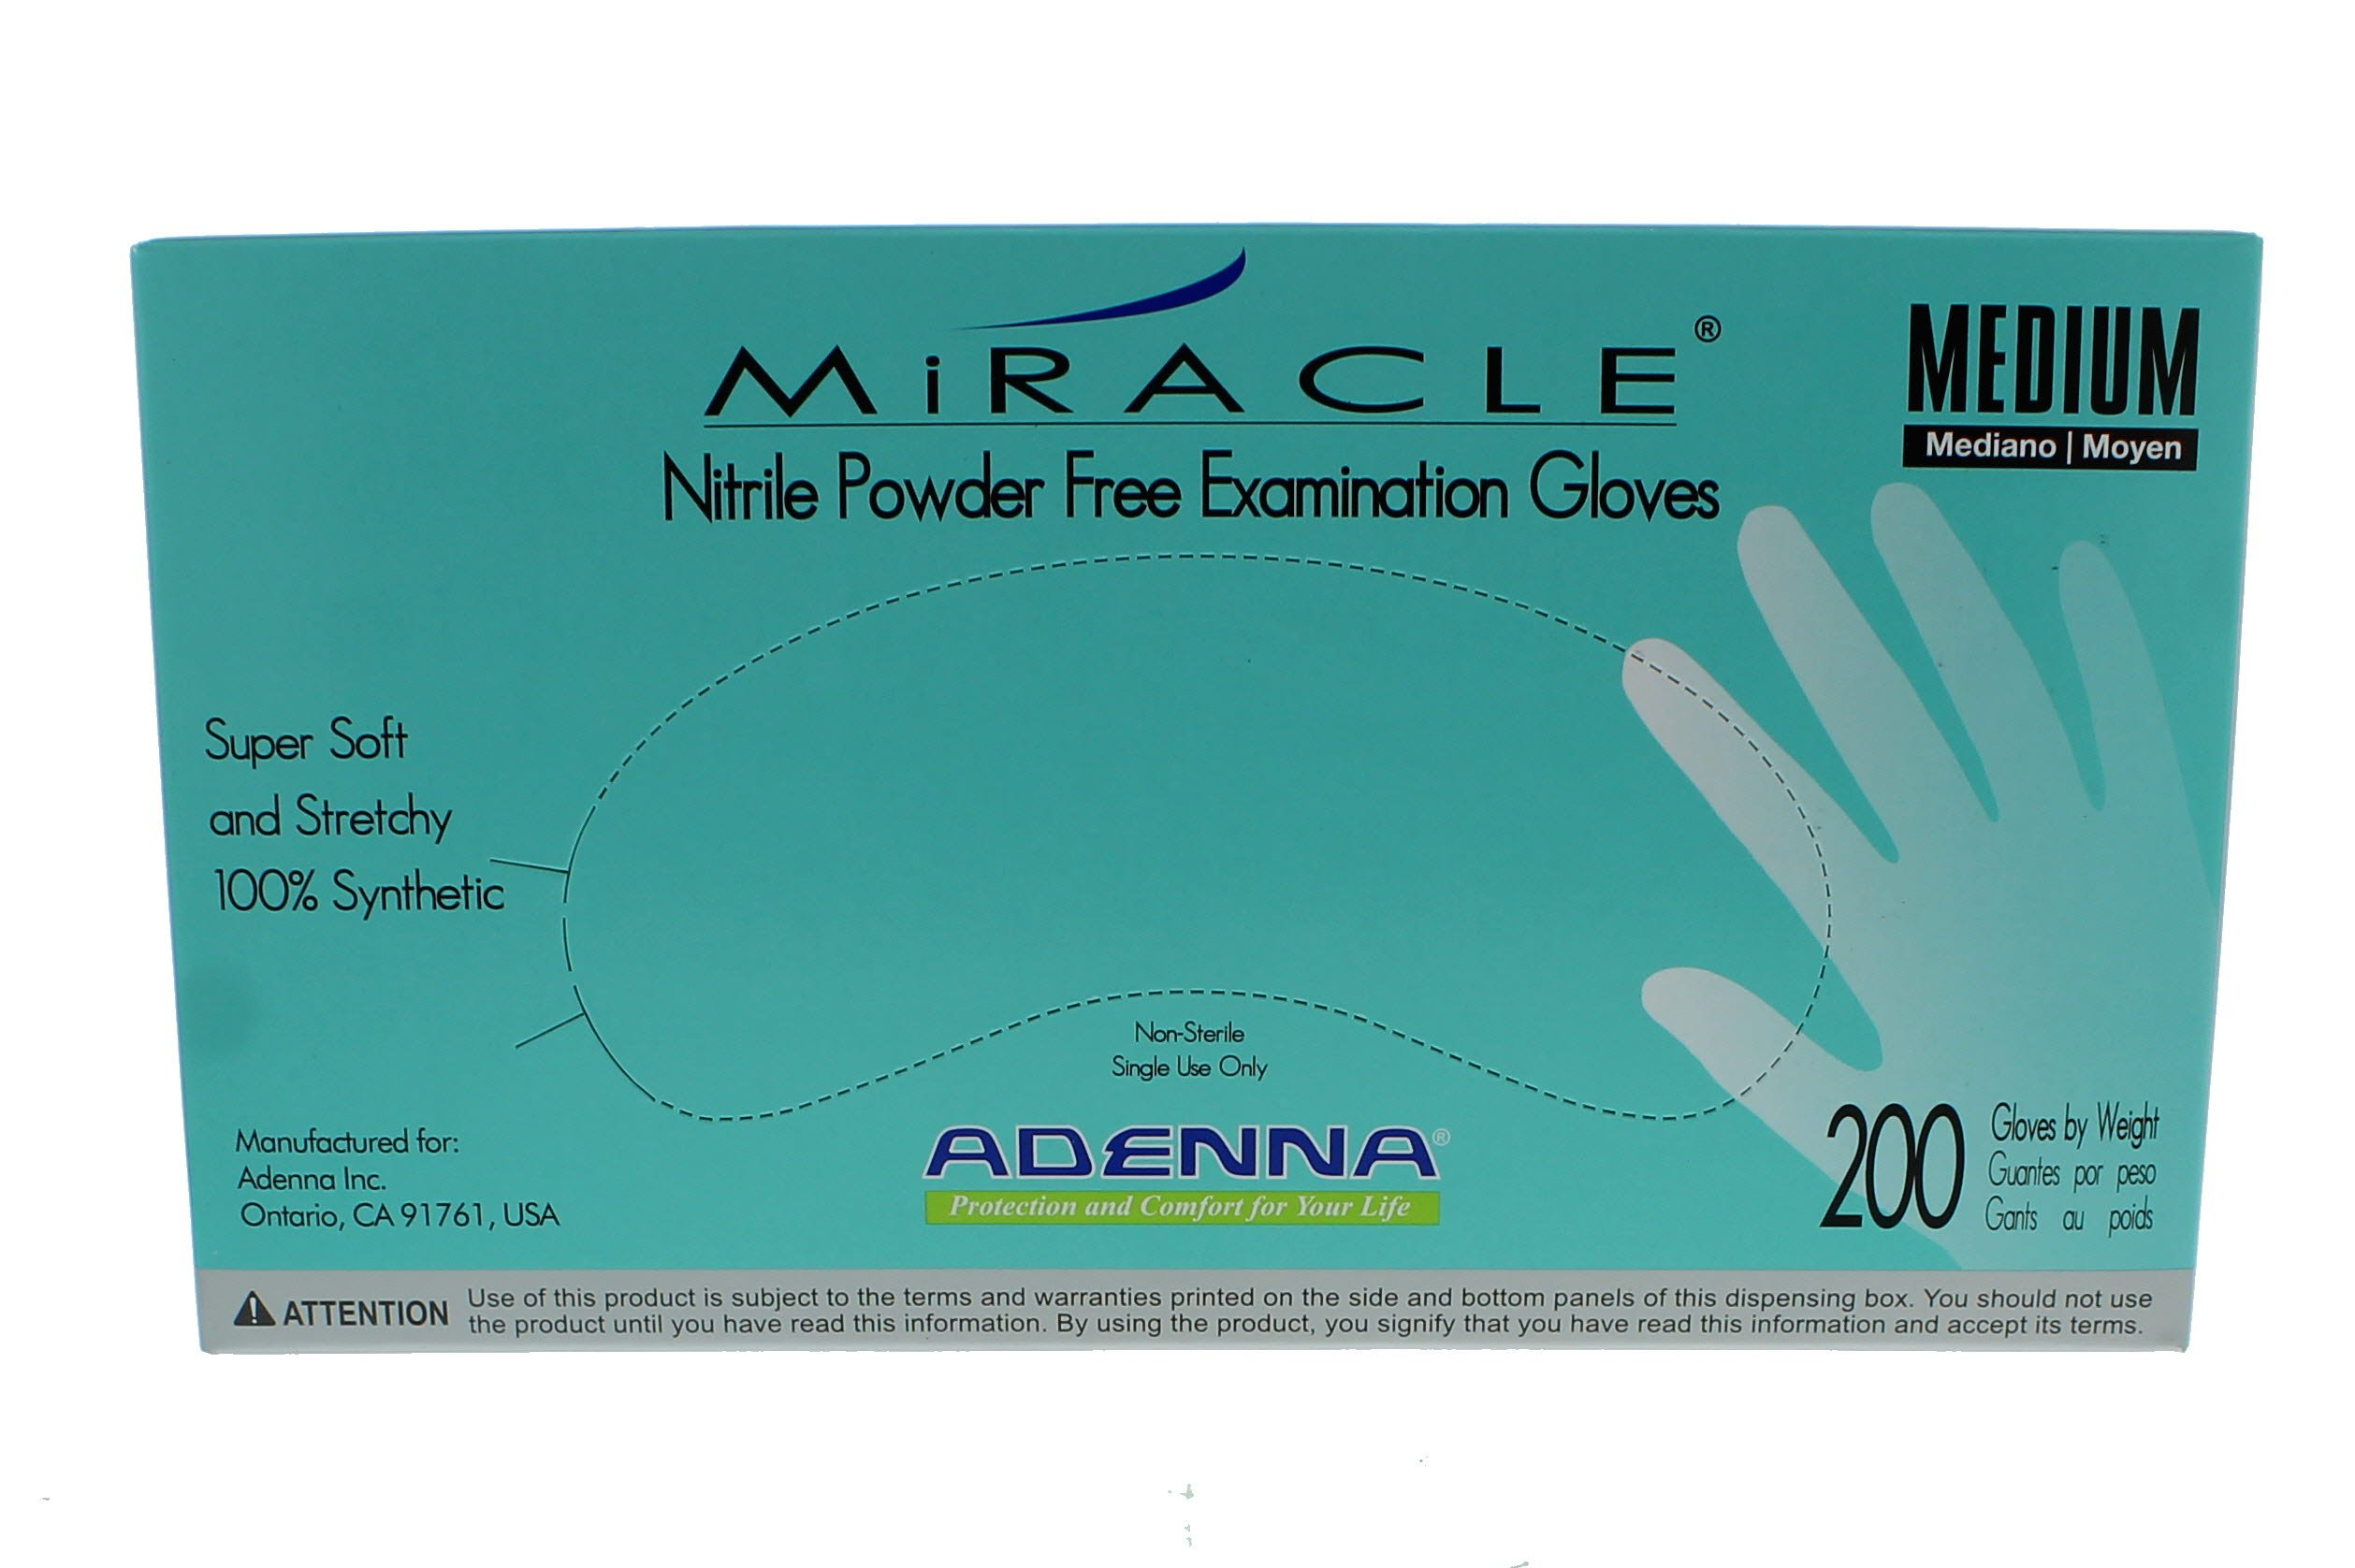 Adenna MIR165 Miracle Nitrile PF Exam Gloves, Medium, 200 Count (Pack of 10)